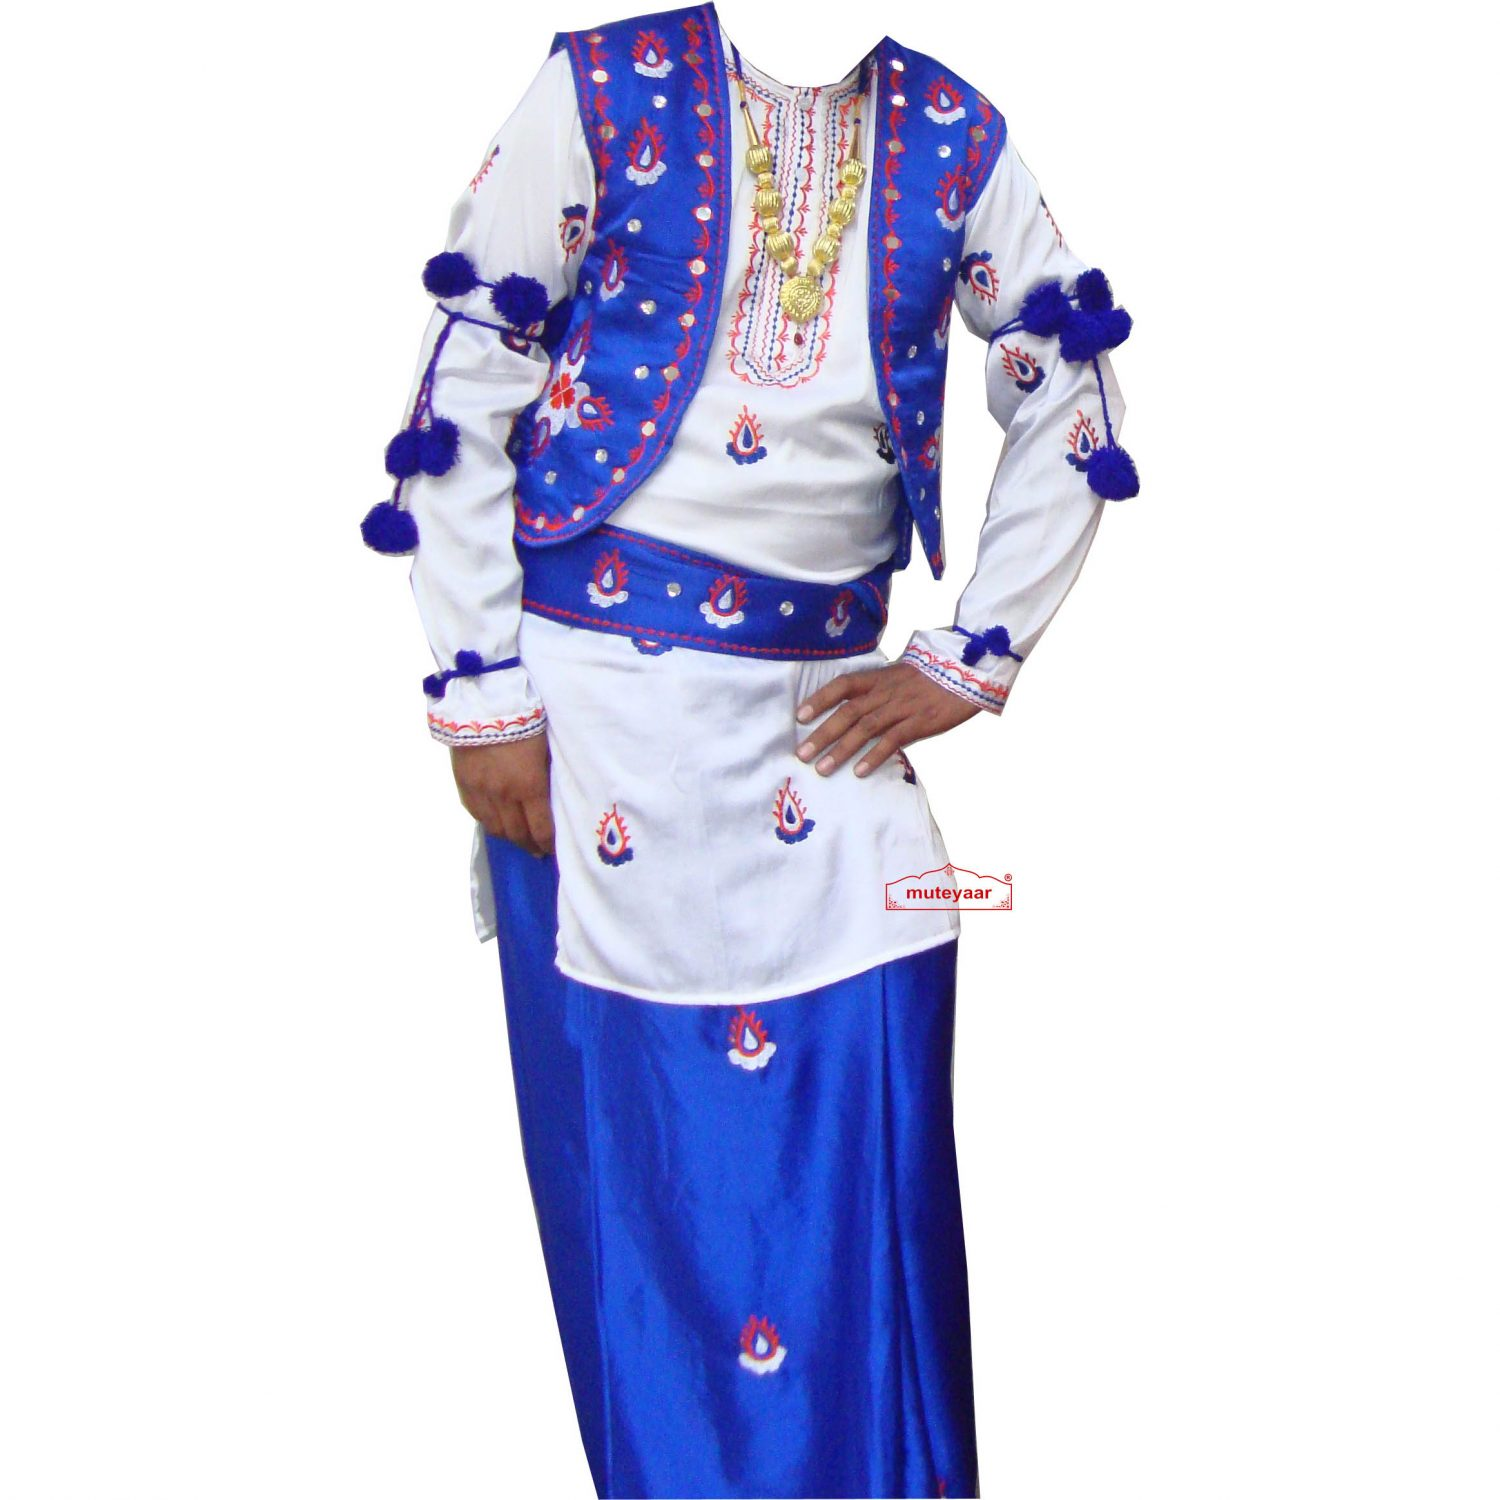 embroidered Bhangra dance Costume / outfit dress- ready to wear 1